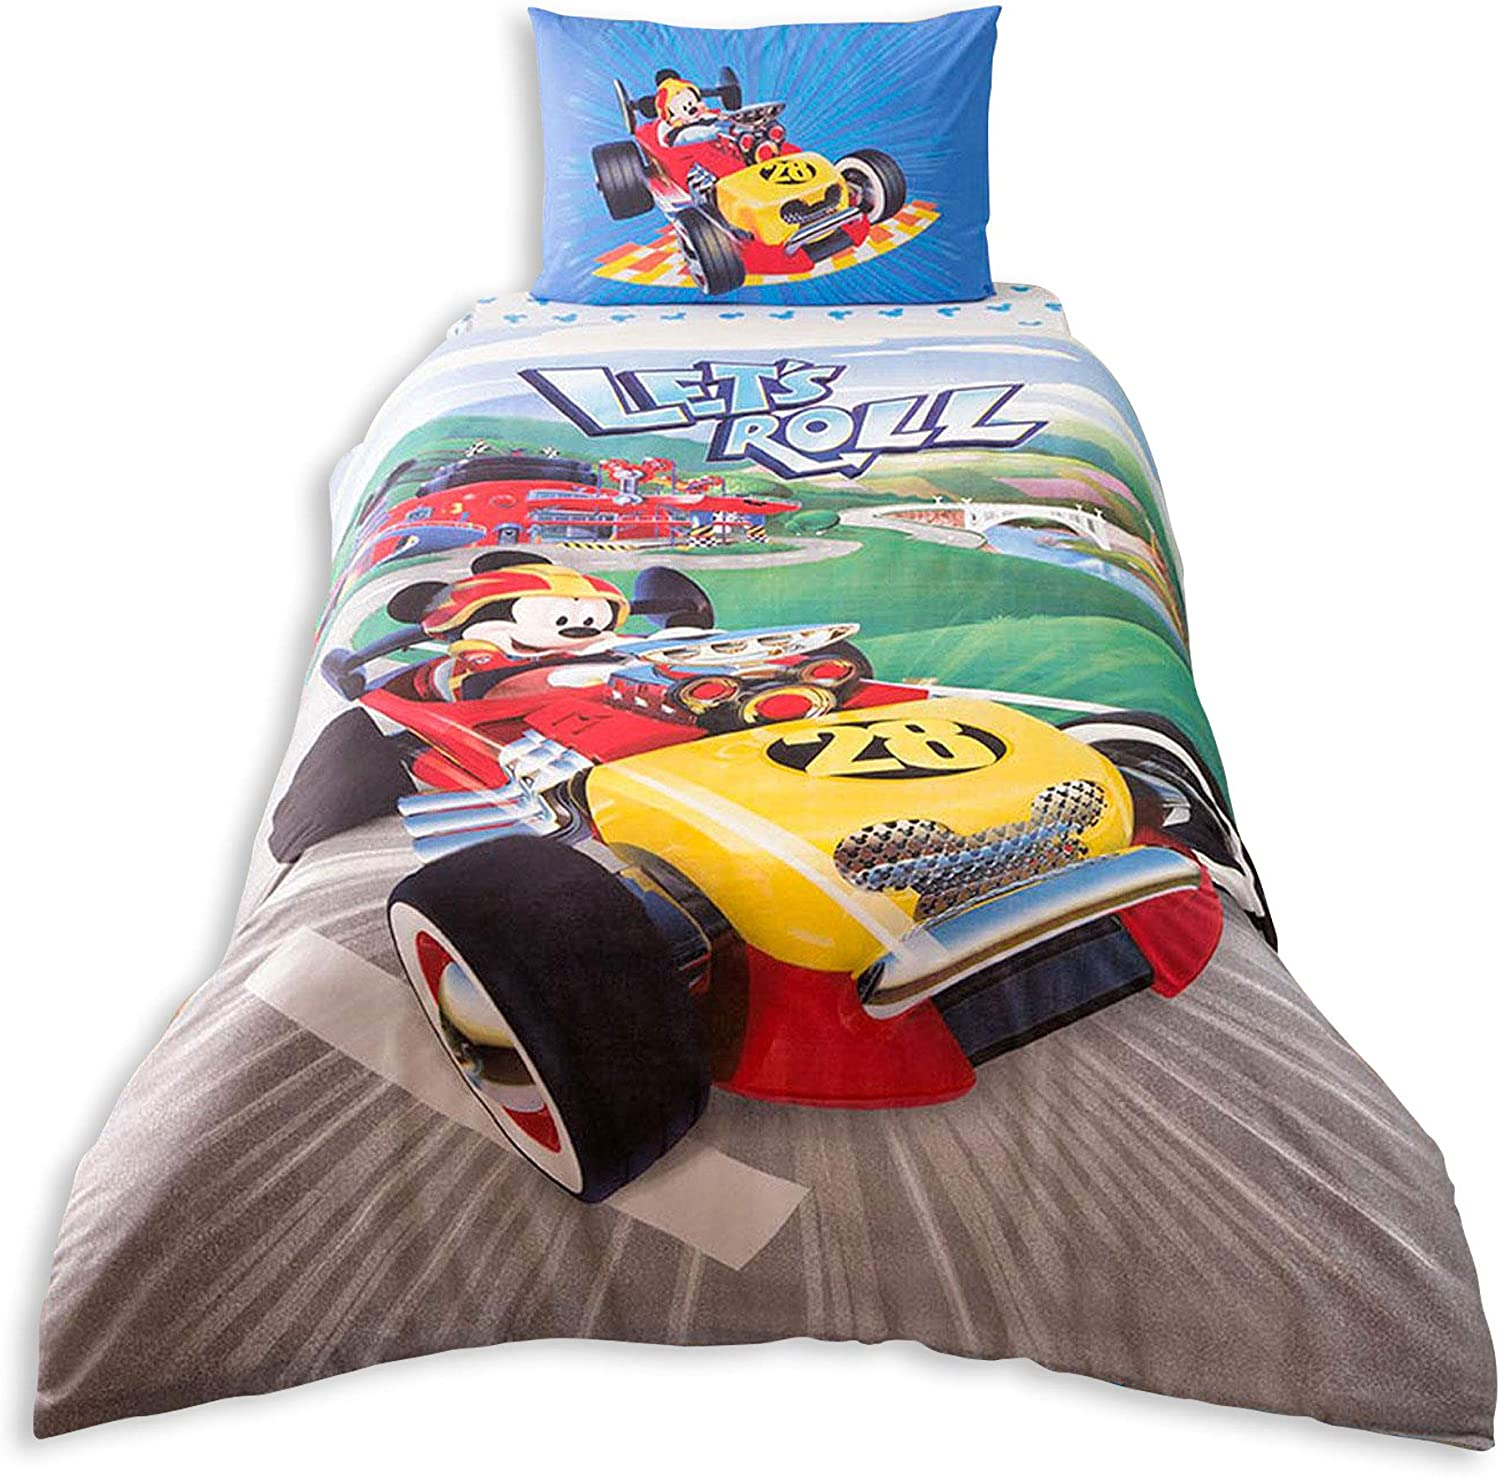 a16bc608e5ae62 Single Twin Twin Twin Kids Original Disney Mickey Racer 100% Cotton Duvet  Cover Bed Set Bedding Set Pillowcase BedSheet Quilt Cover 9fc276